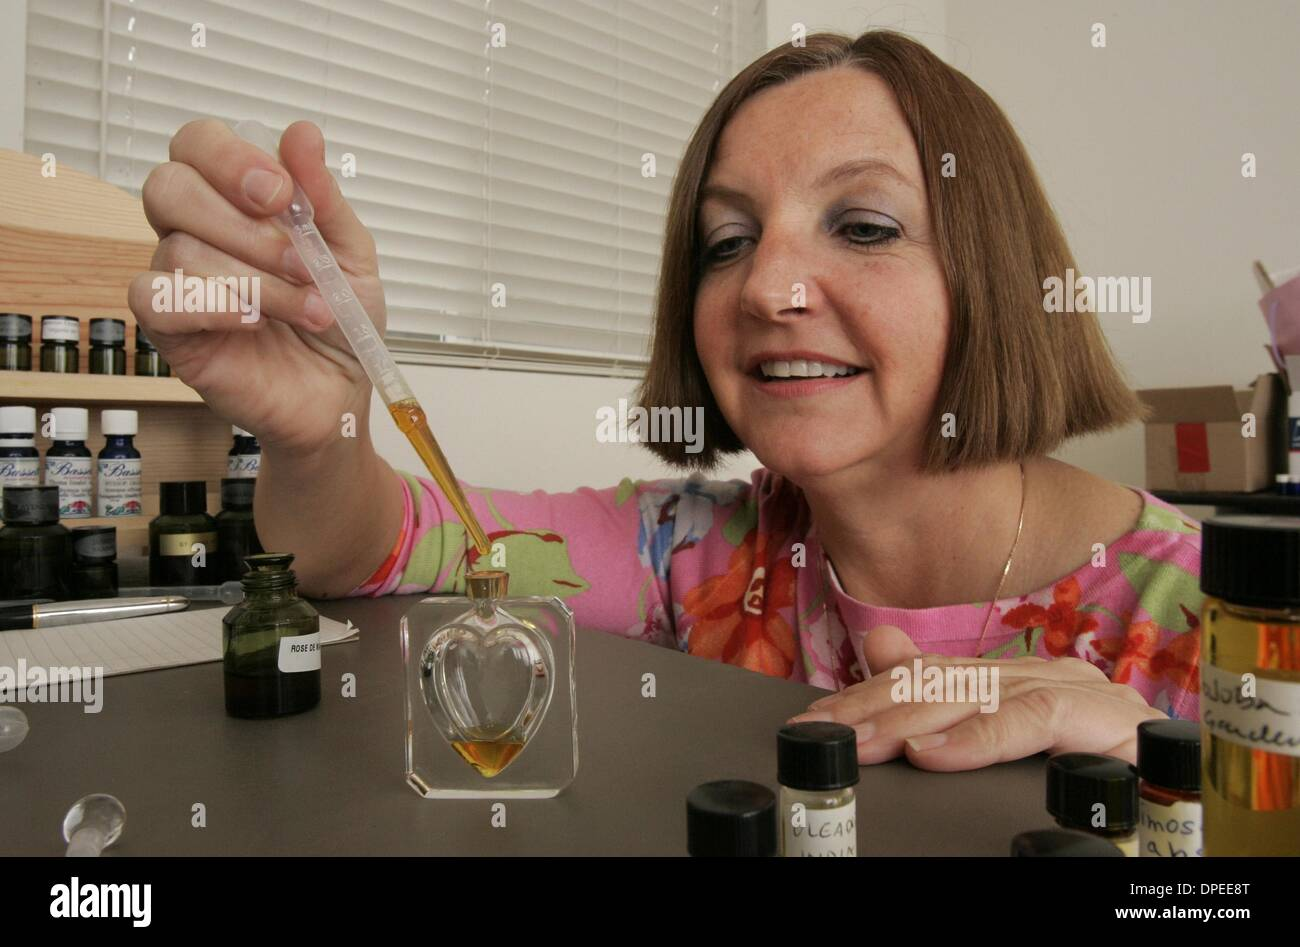 (Published 2/20/2005, N-6)  JoANNE BASSETT places drops of rose de mai, made from May roses in France, into a bottle for some special perfume she's making.  U/T photo CHARLIE NEUMAN - Stock Image